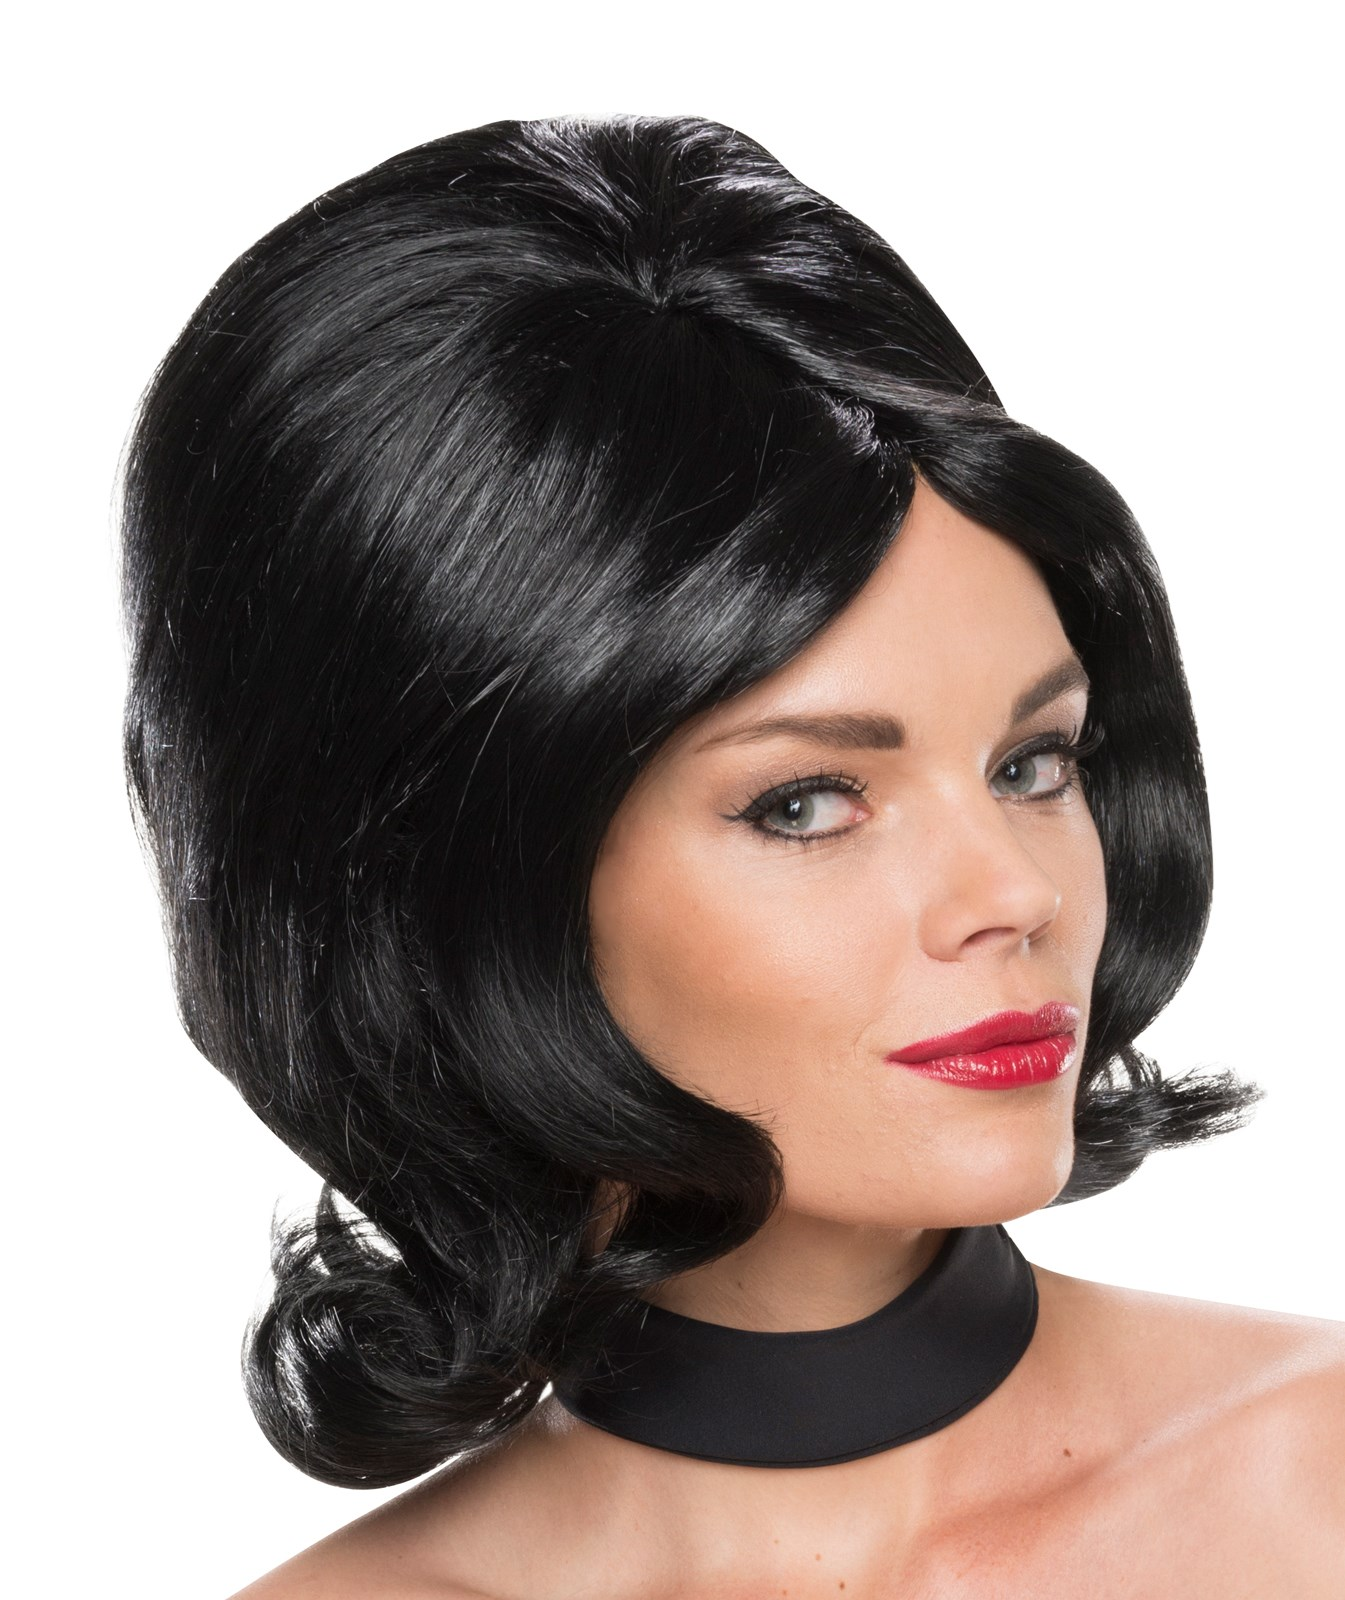 Minions Movie: Scarlet Overkill Womens Wig